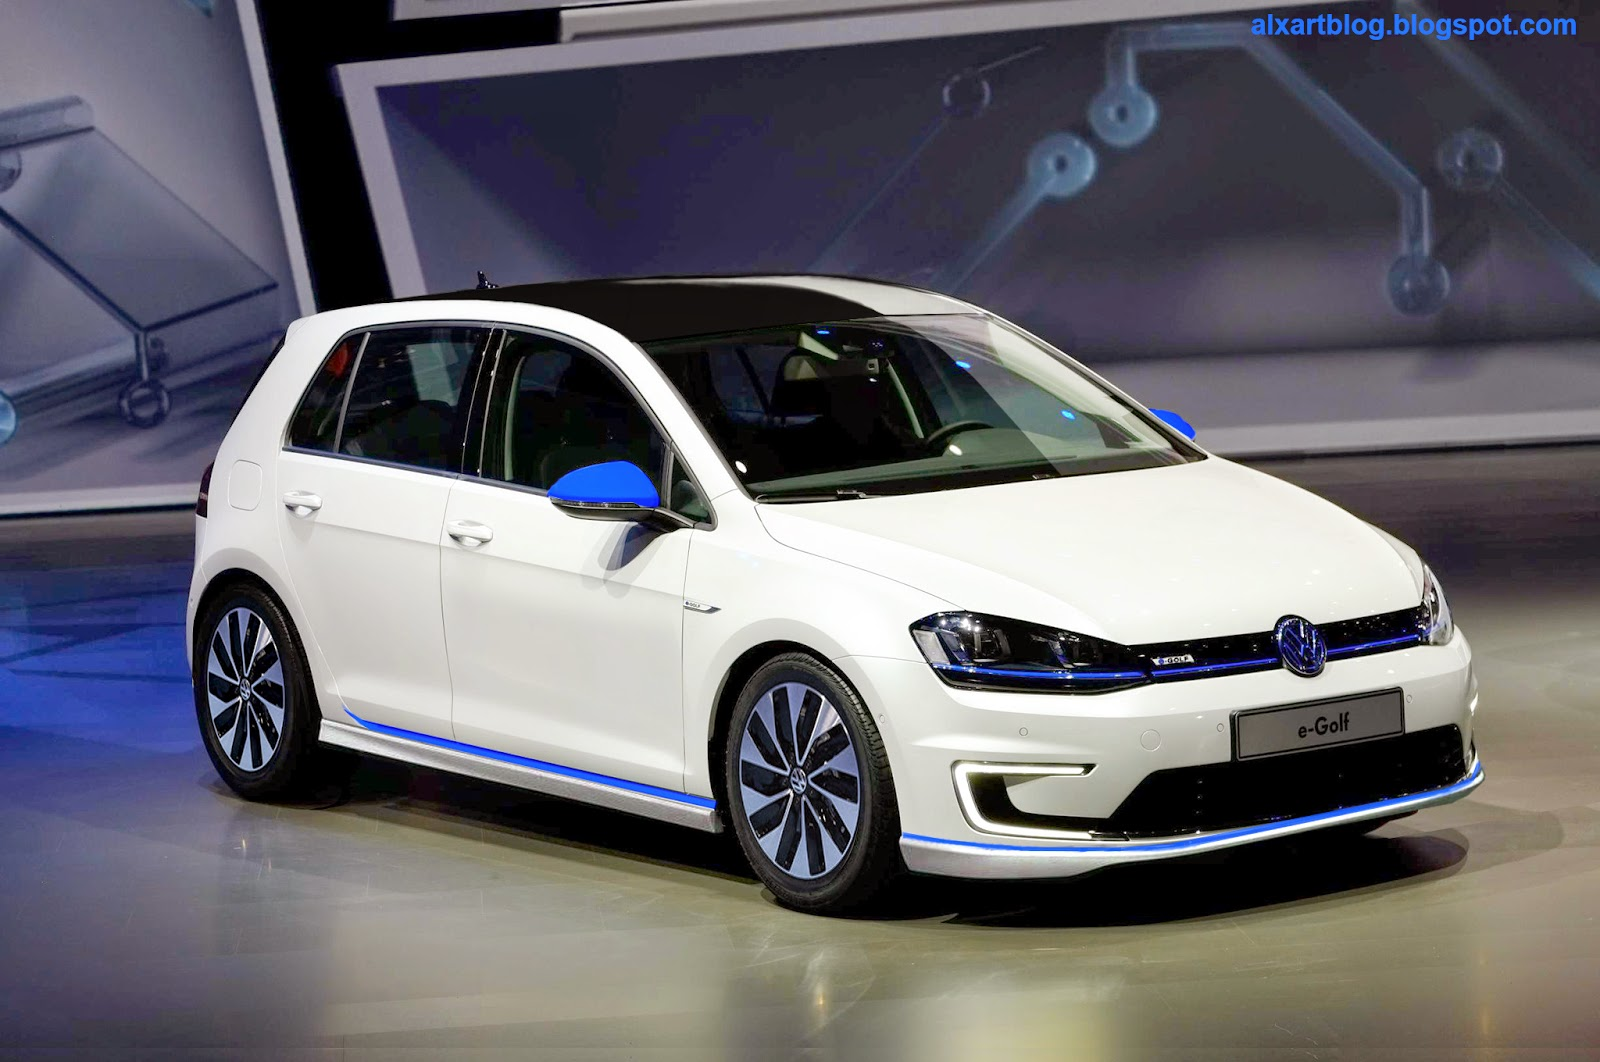 2015 Volkswagen E-golf #18